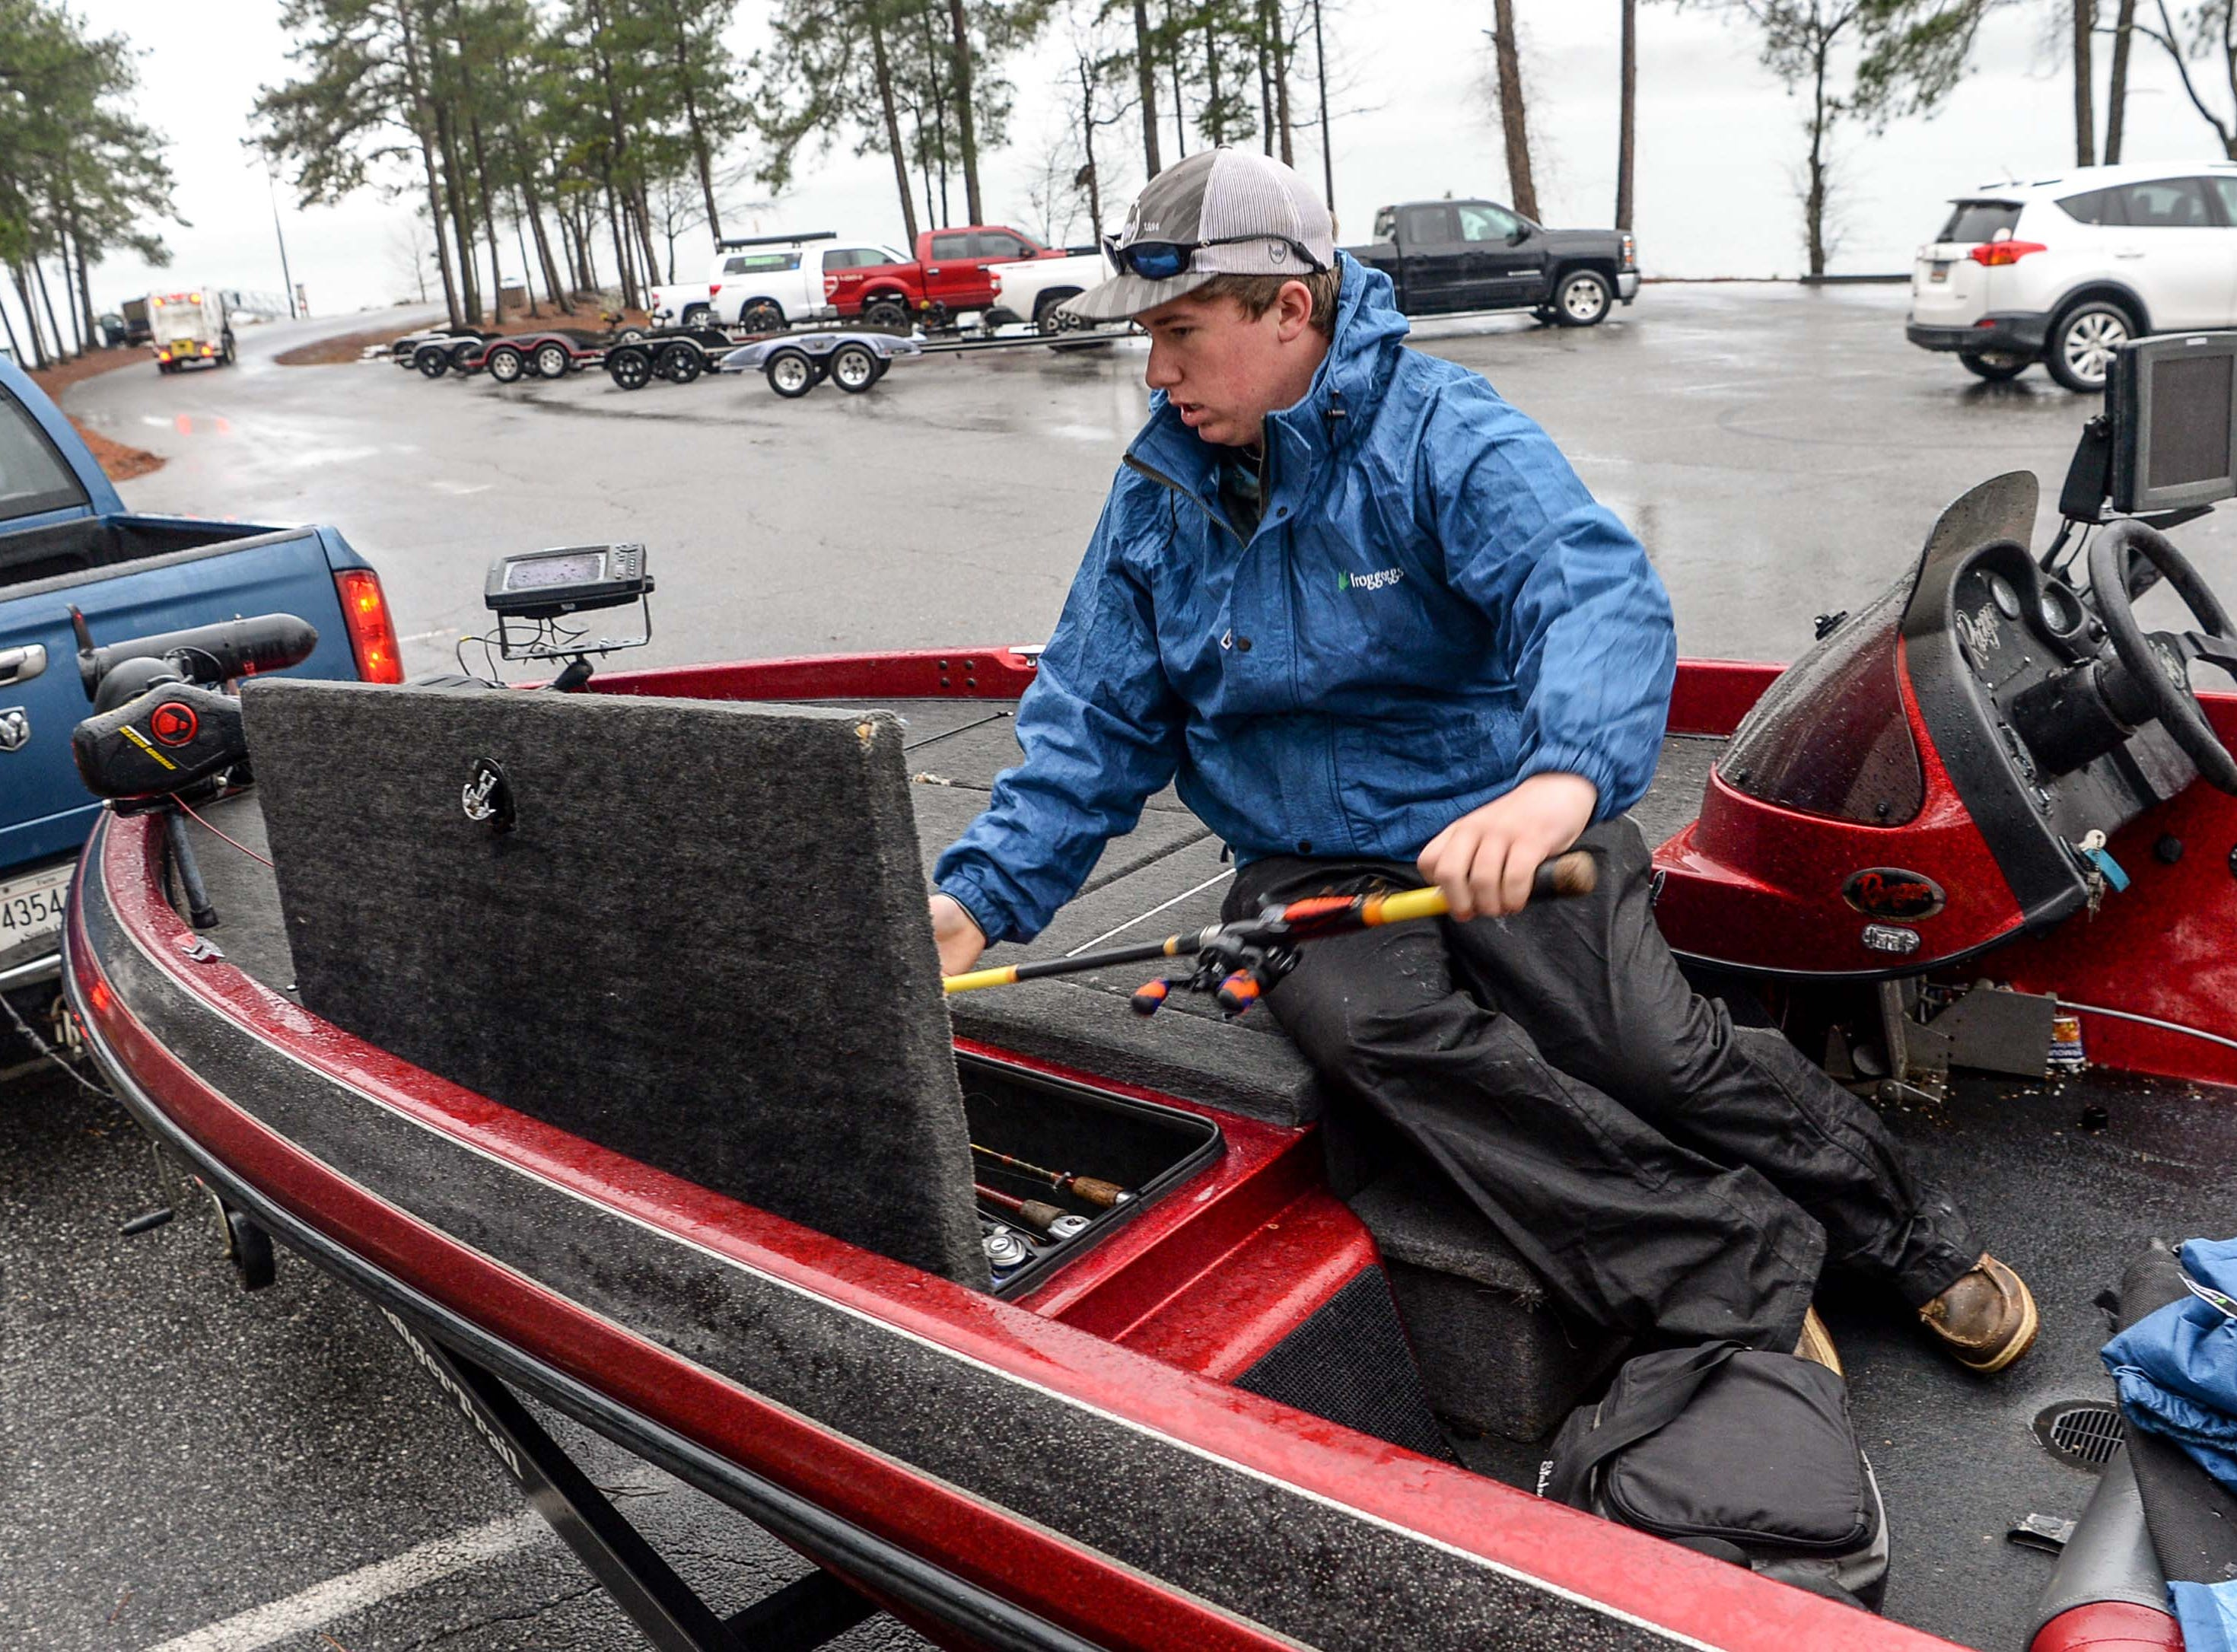 Vernon Reynolds, 15, of North Augusta High School Fishing Team checks his poles before a practice before the Mossy Oak Fishing Bassmaster High School Open at the Green Pond Boat Landing on Hartwell Lake in Anderson Friday. The official event, with 87 schools from 15 states, starts at the boat landing at 6:45 a.m. Saturday morning.